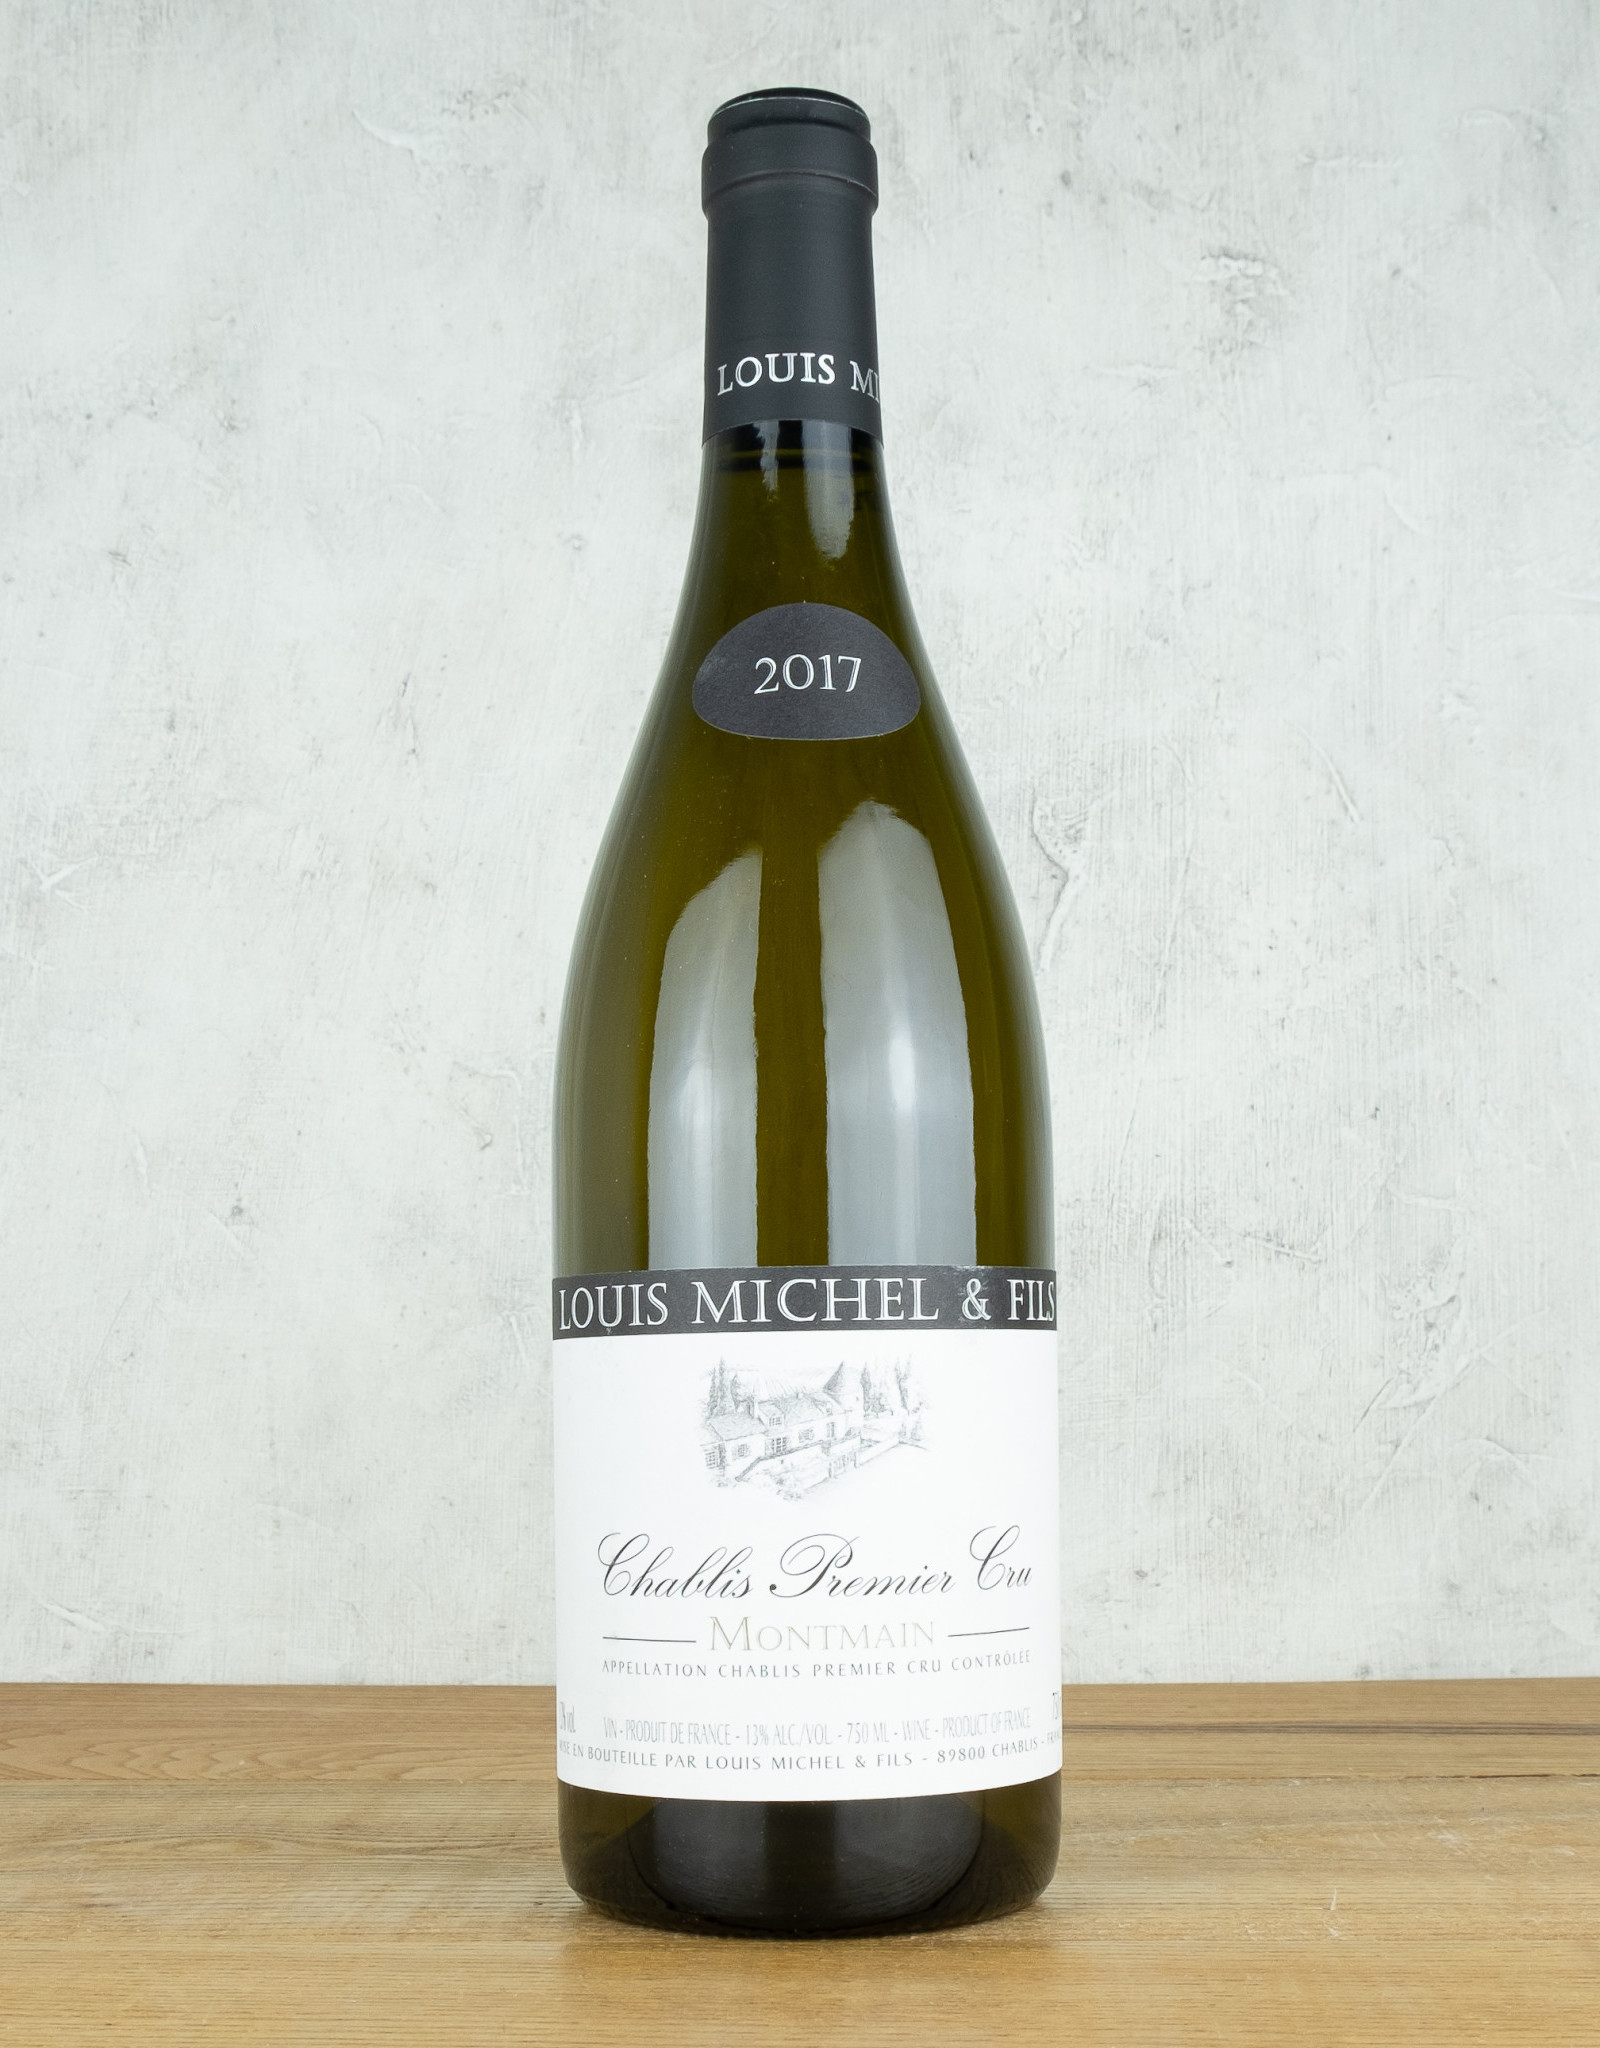 Louis Michel Montmain Chablis